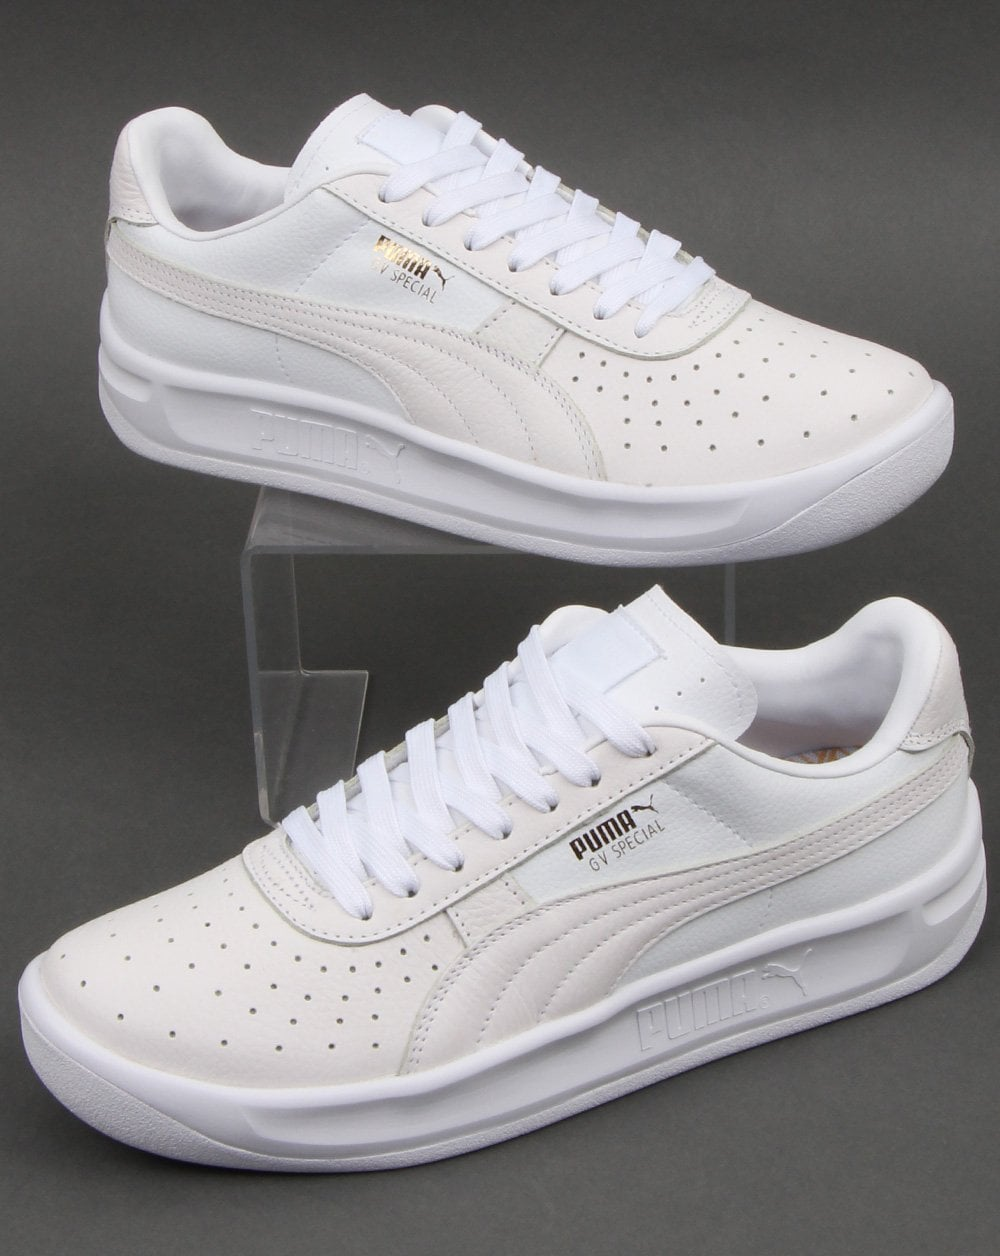 Puma Gv Special+ Trainers White - More Puma is Available at 80s ... f69751330